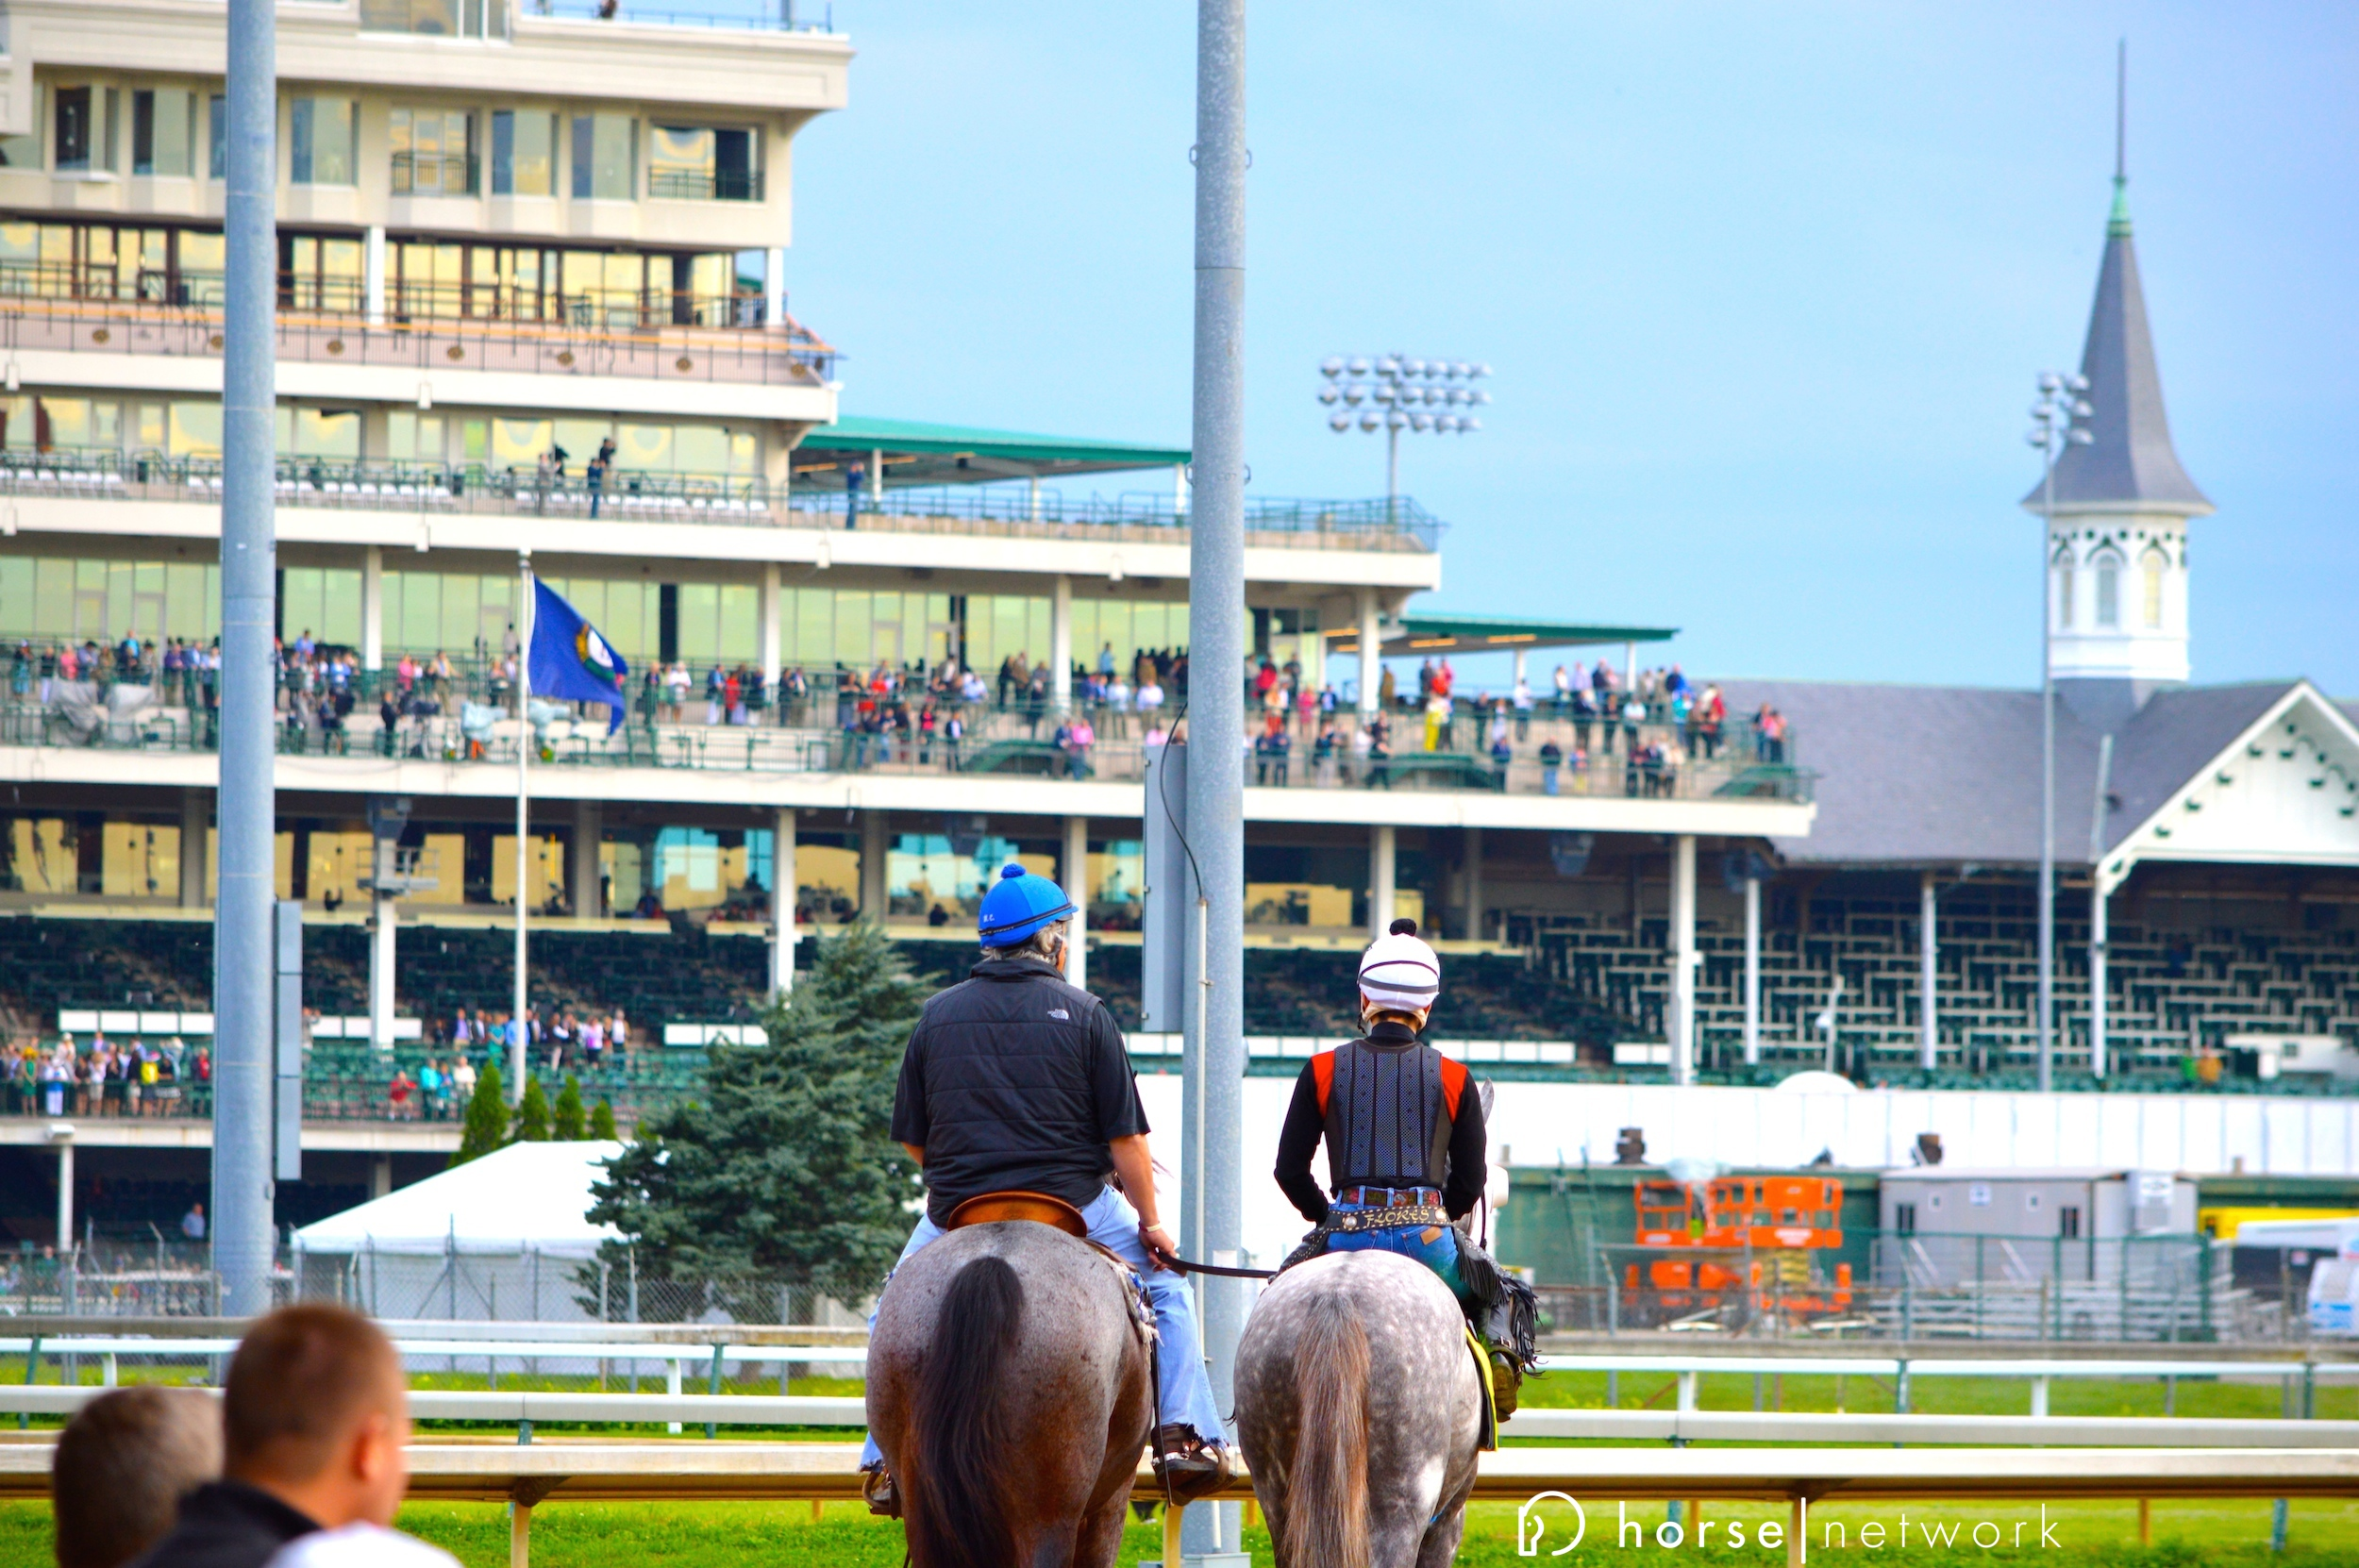 Arkansas Derby champ Creator (right) takes in the grand stage.